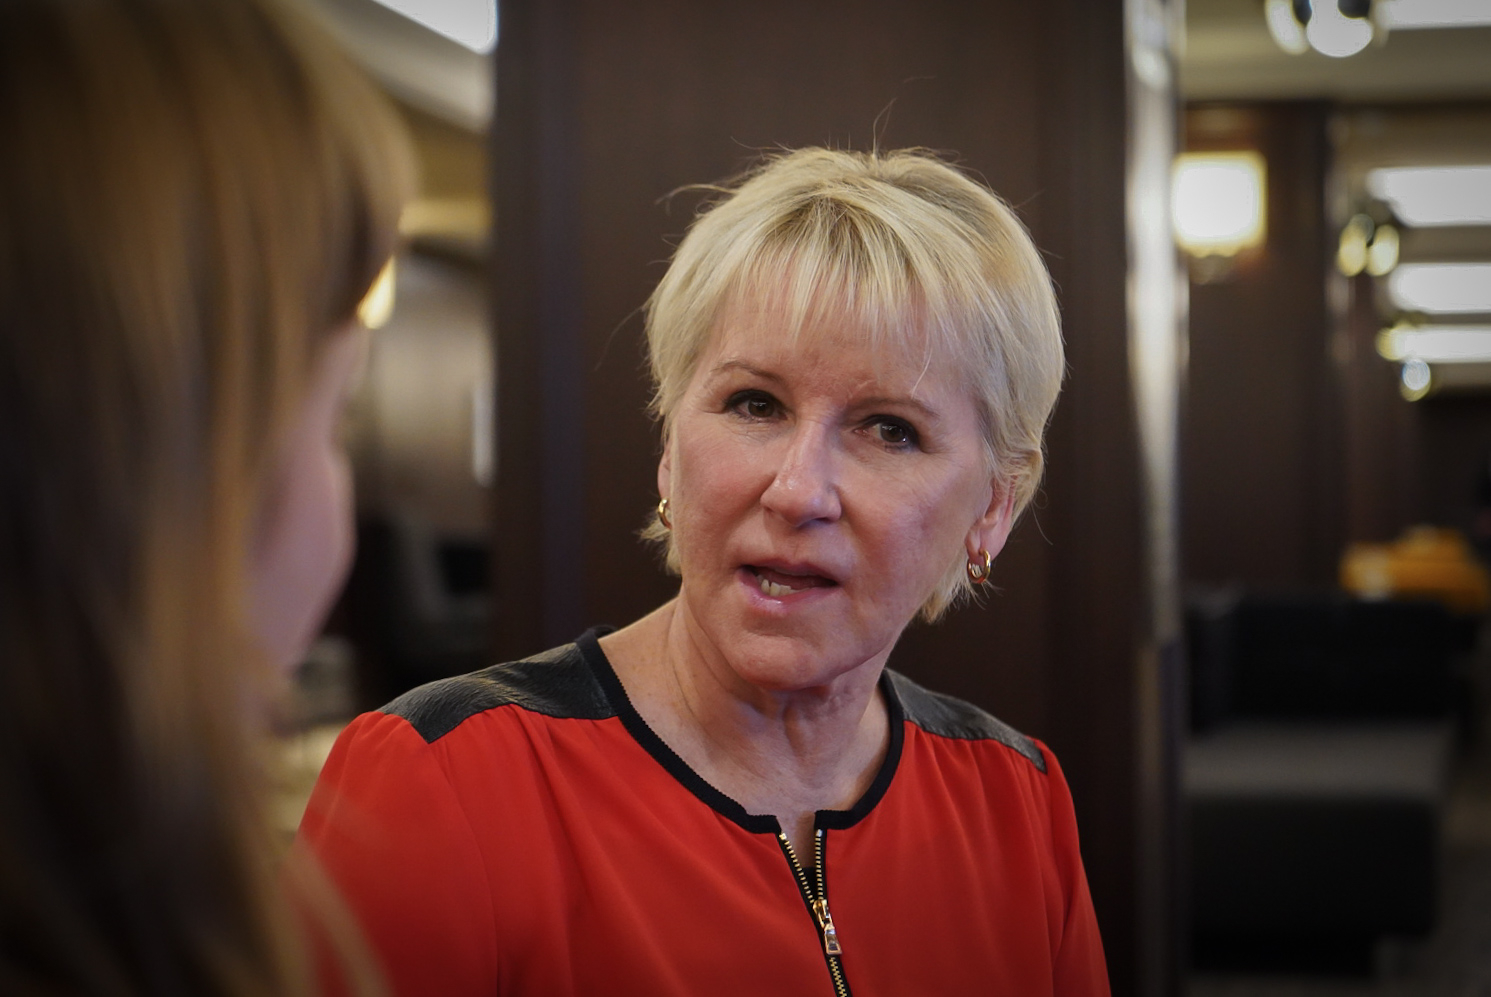 Margot Wallström at the female foreign ministers meeting in Montreal in September 2018